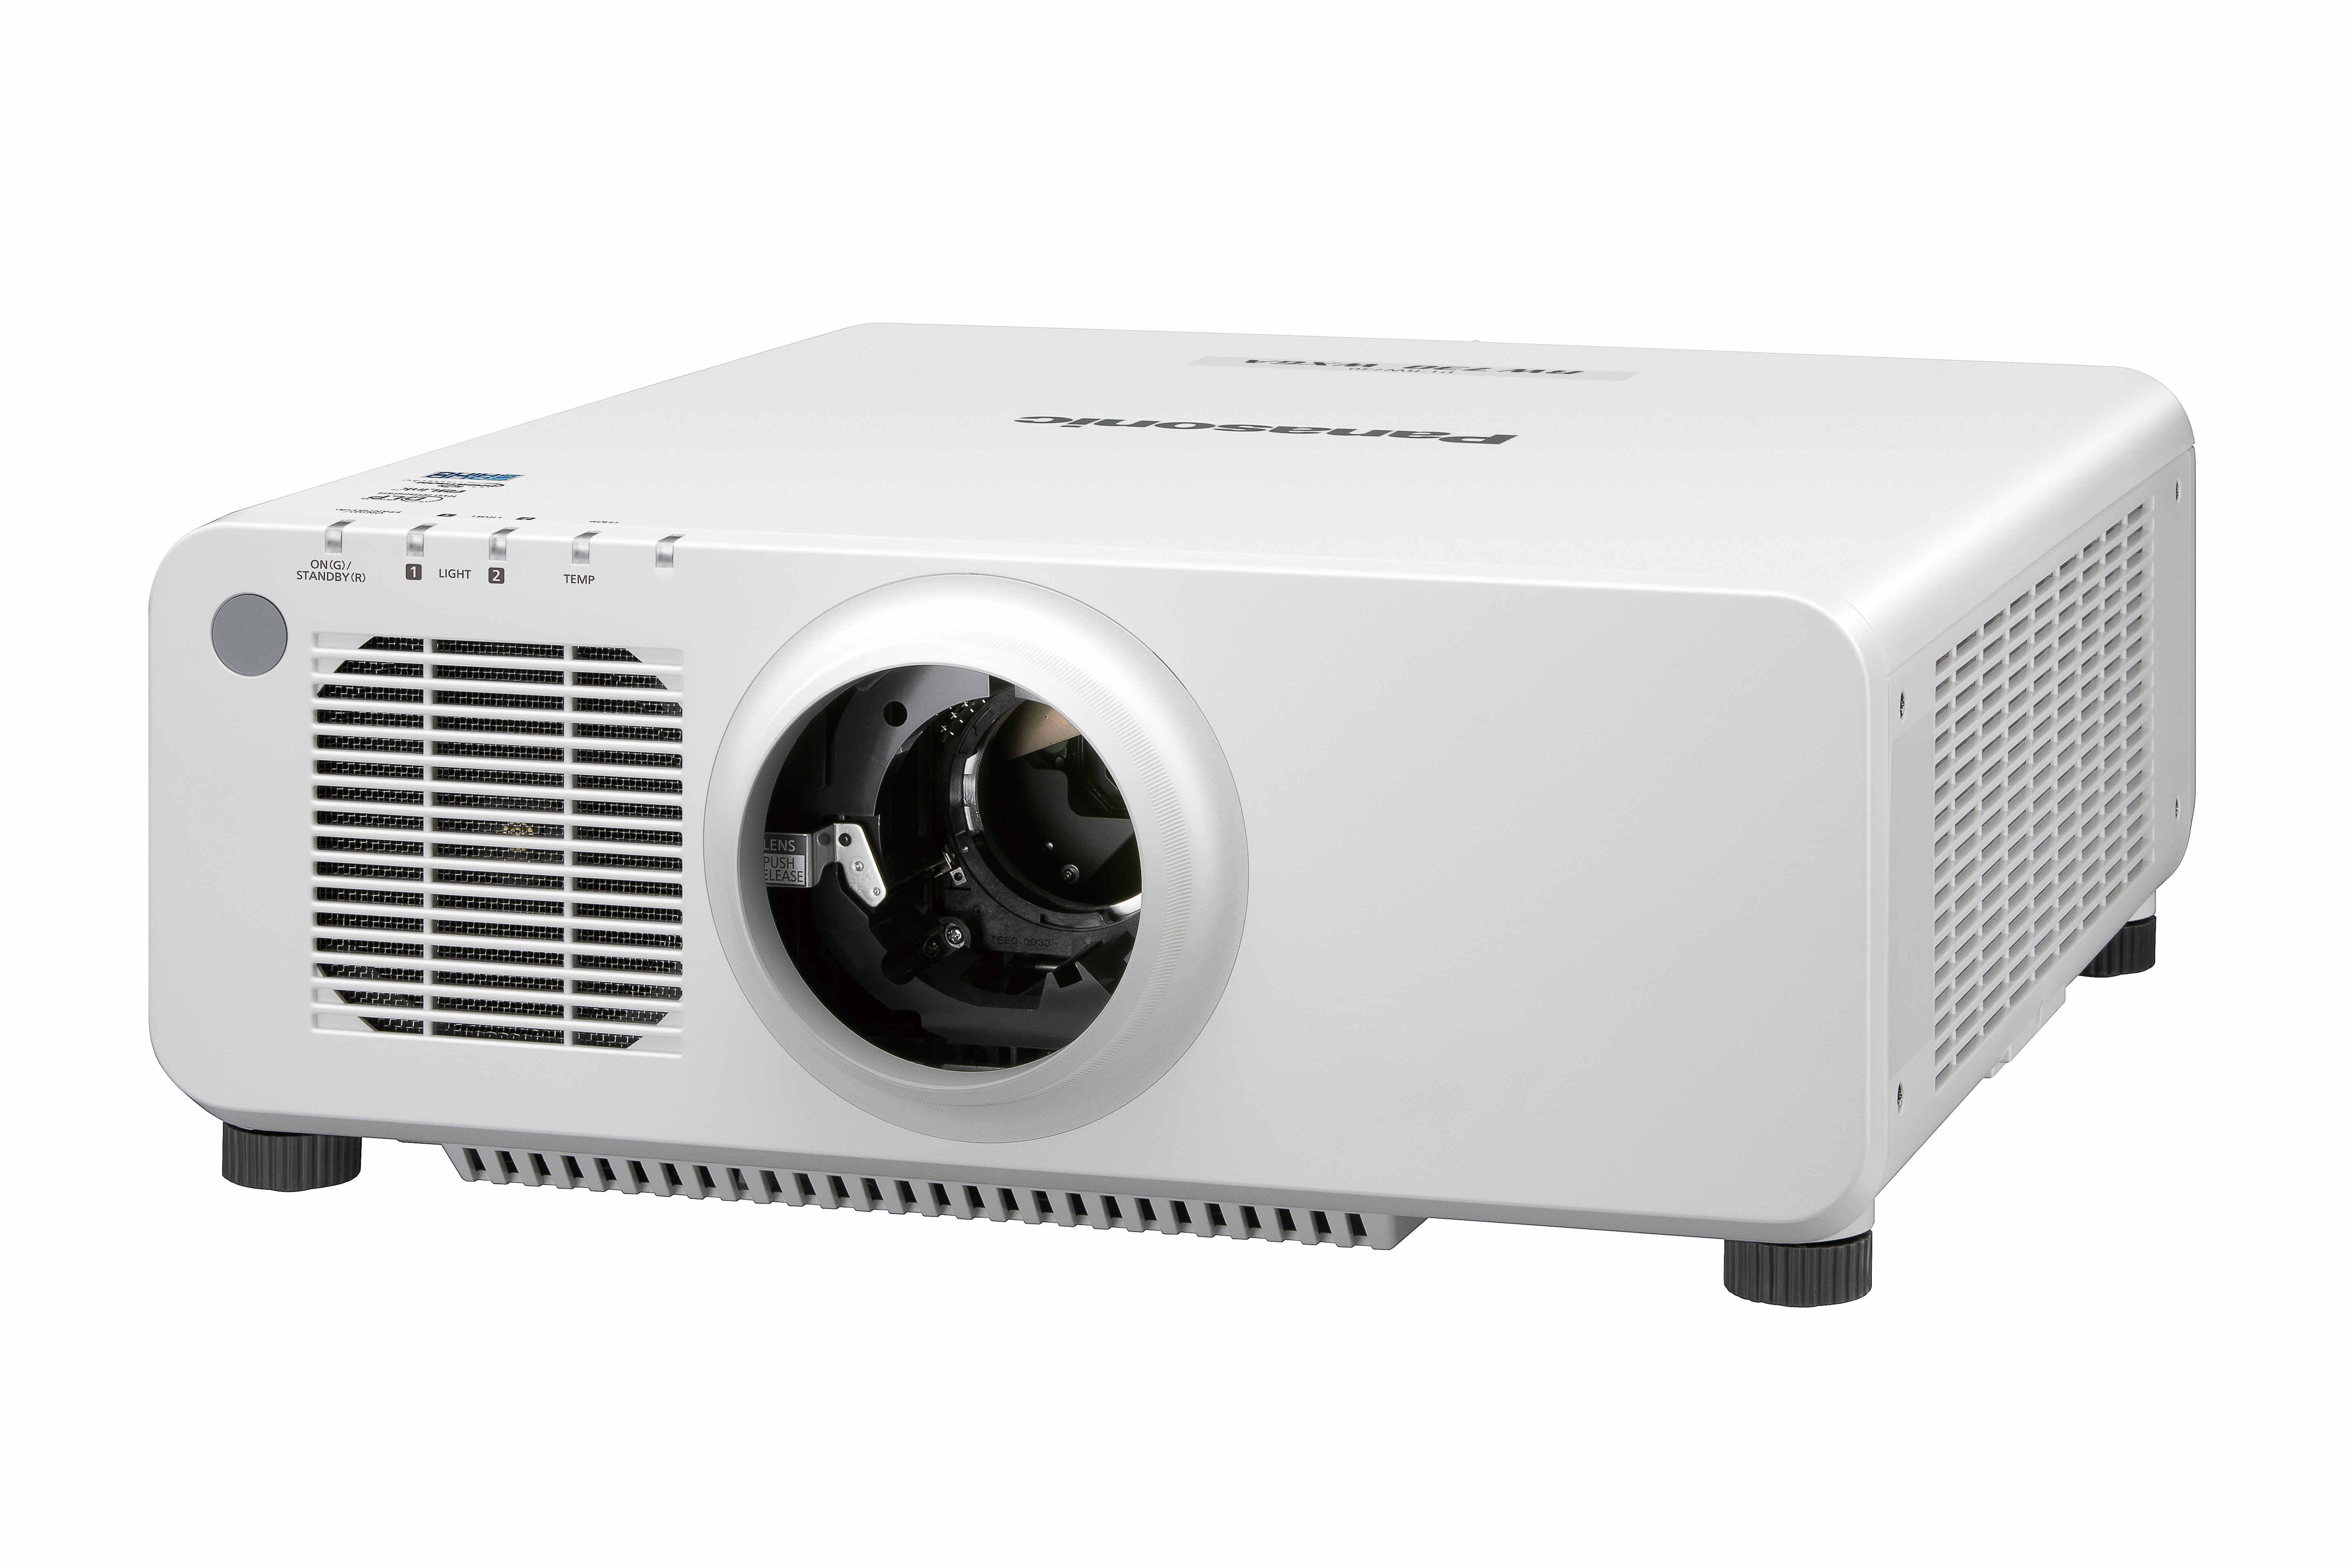 7200lm WXGA Laser Projector in White wtih No Lens